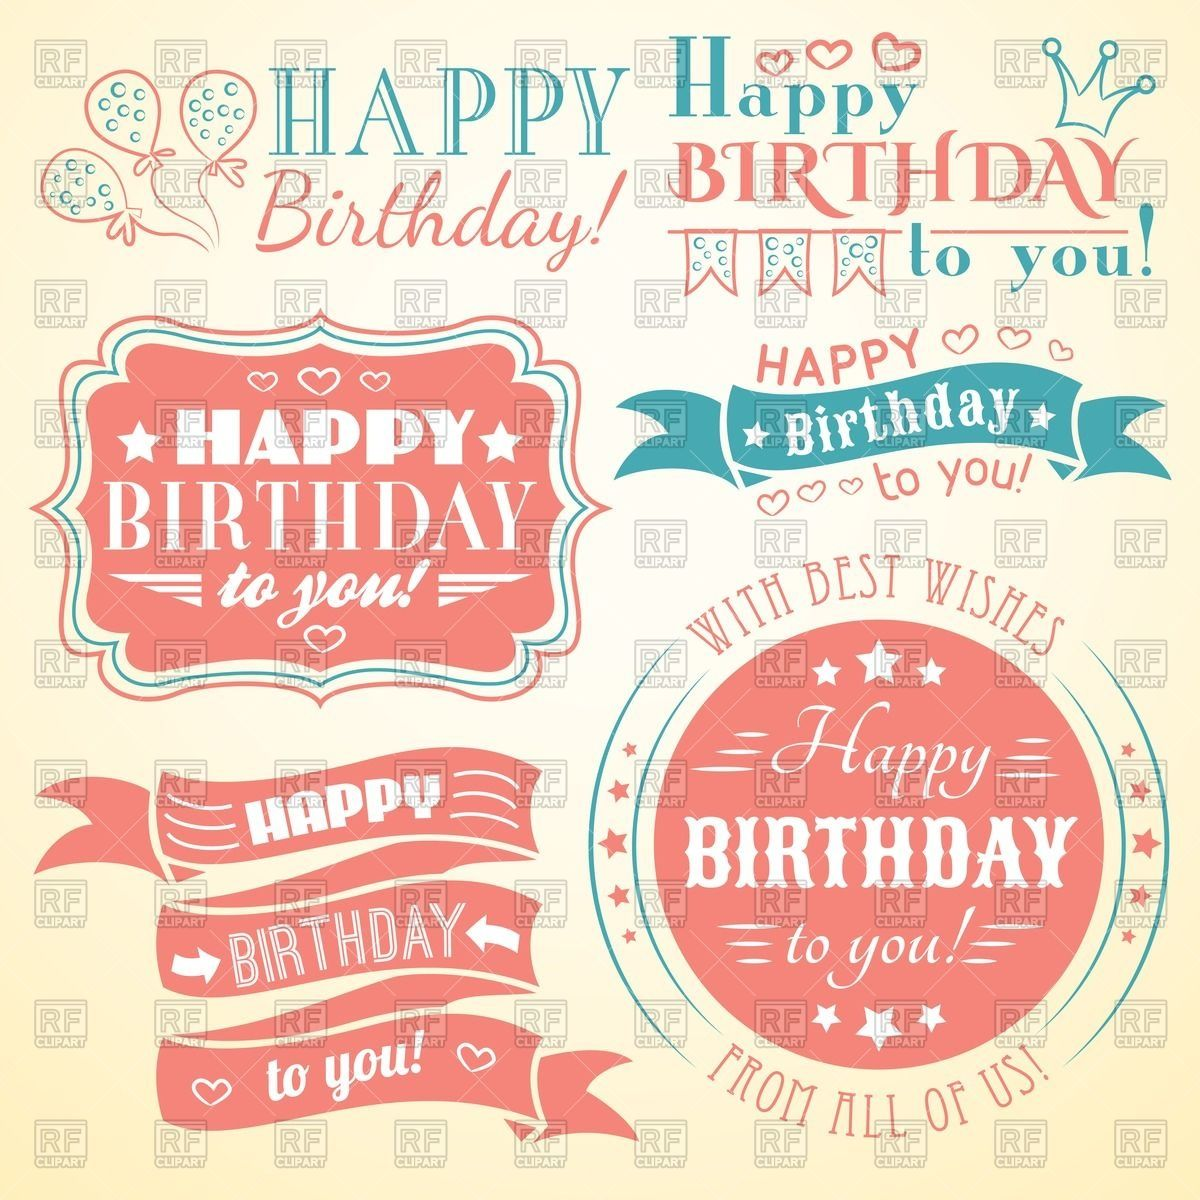 Happy birthday - retro banners, labels, greeting cards and frames ...